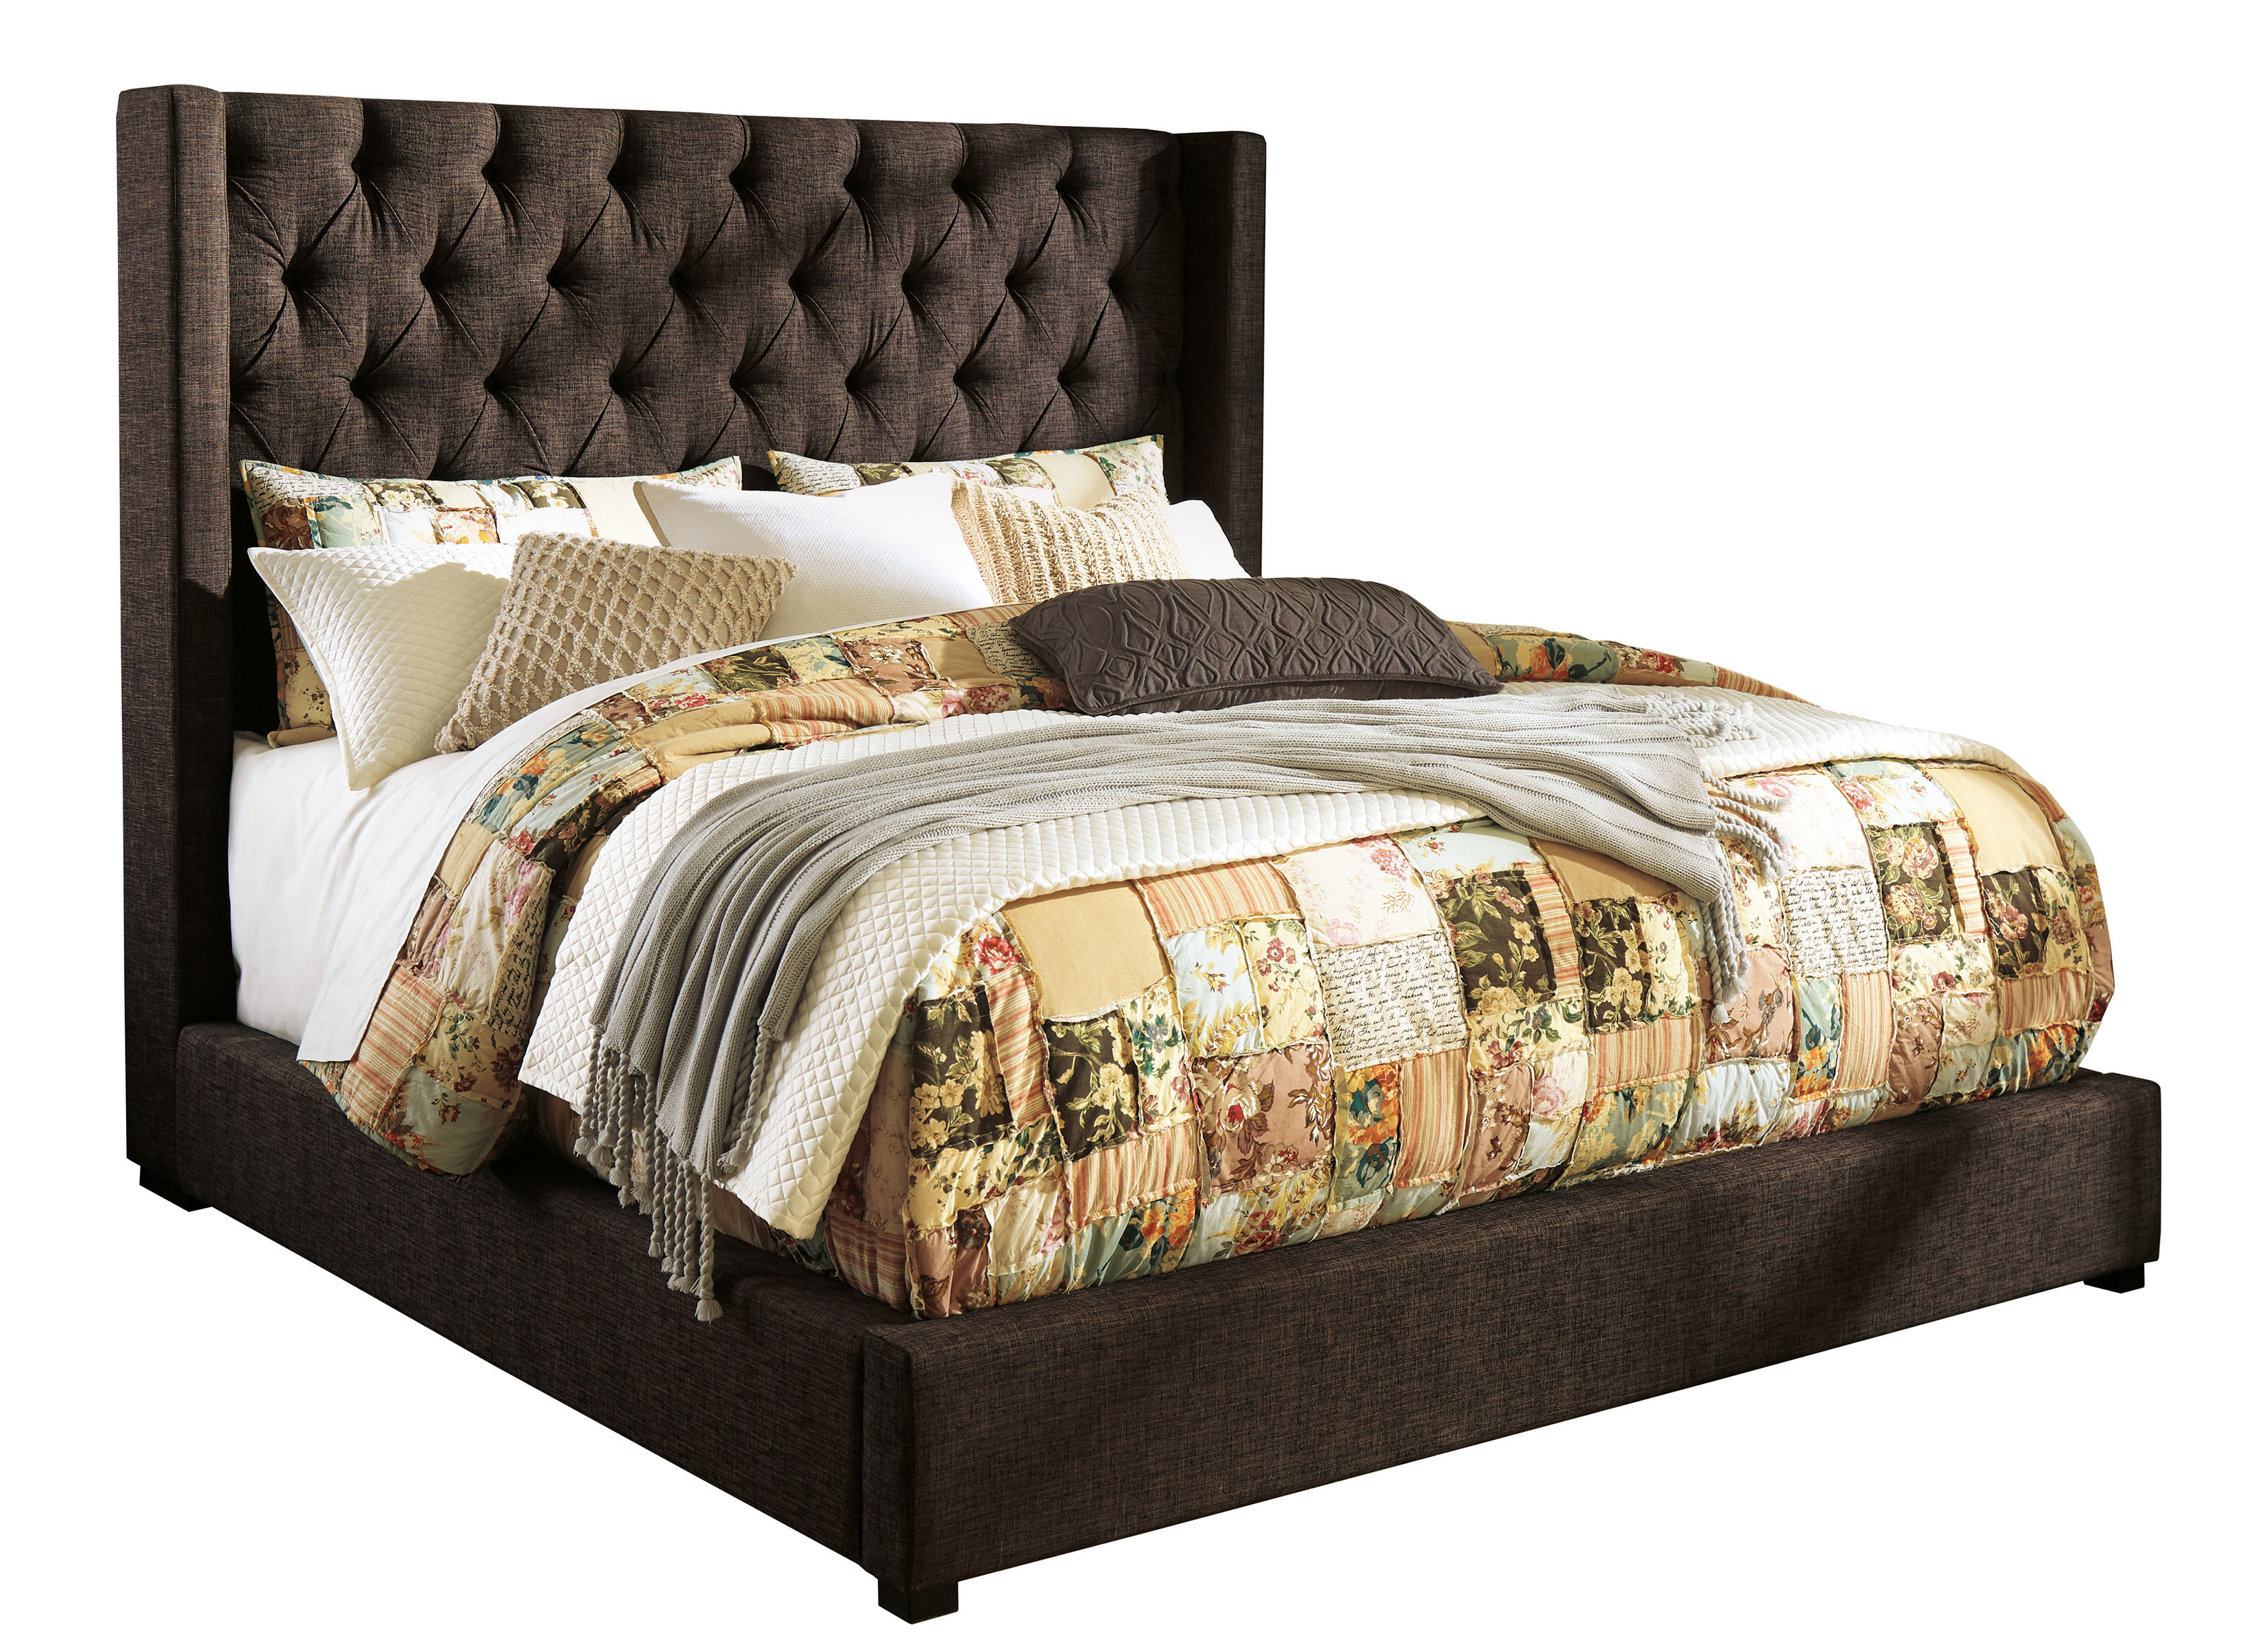 Ashley Furniture Norrister Dark Brown Queen Upholstered Bed The Classy Home